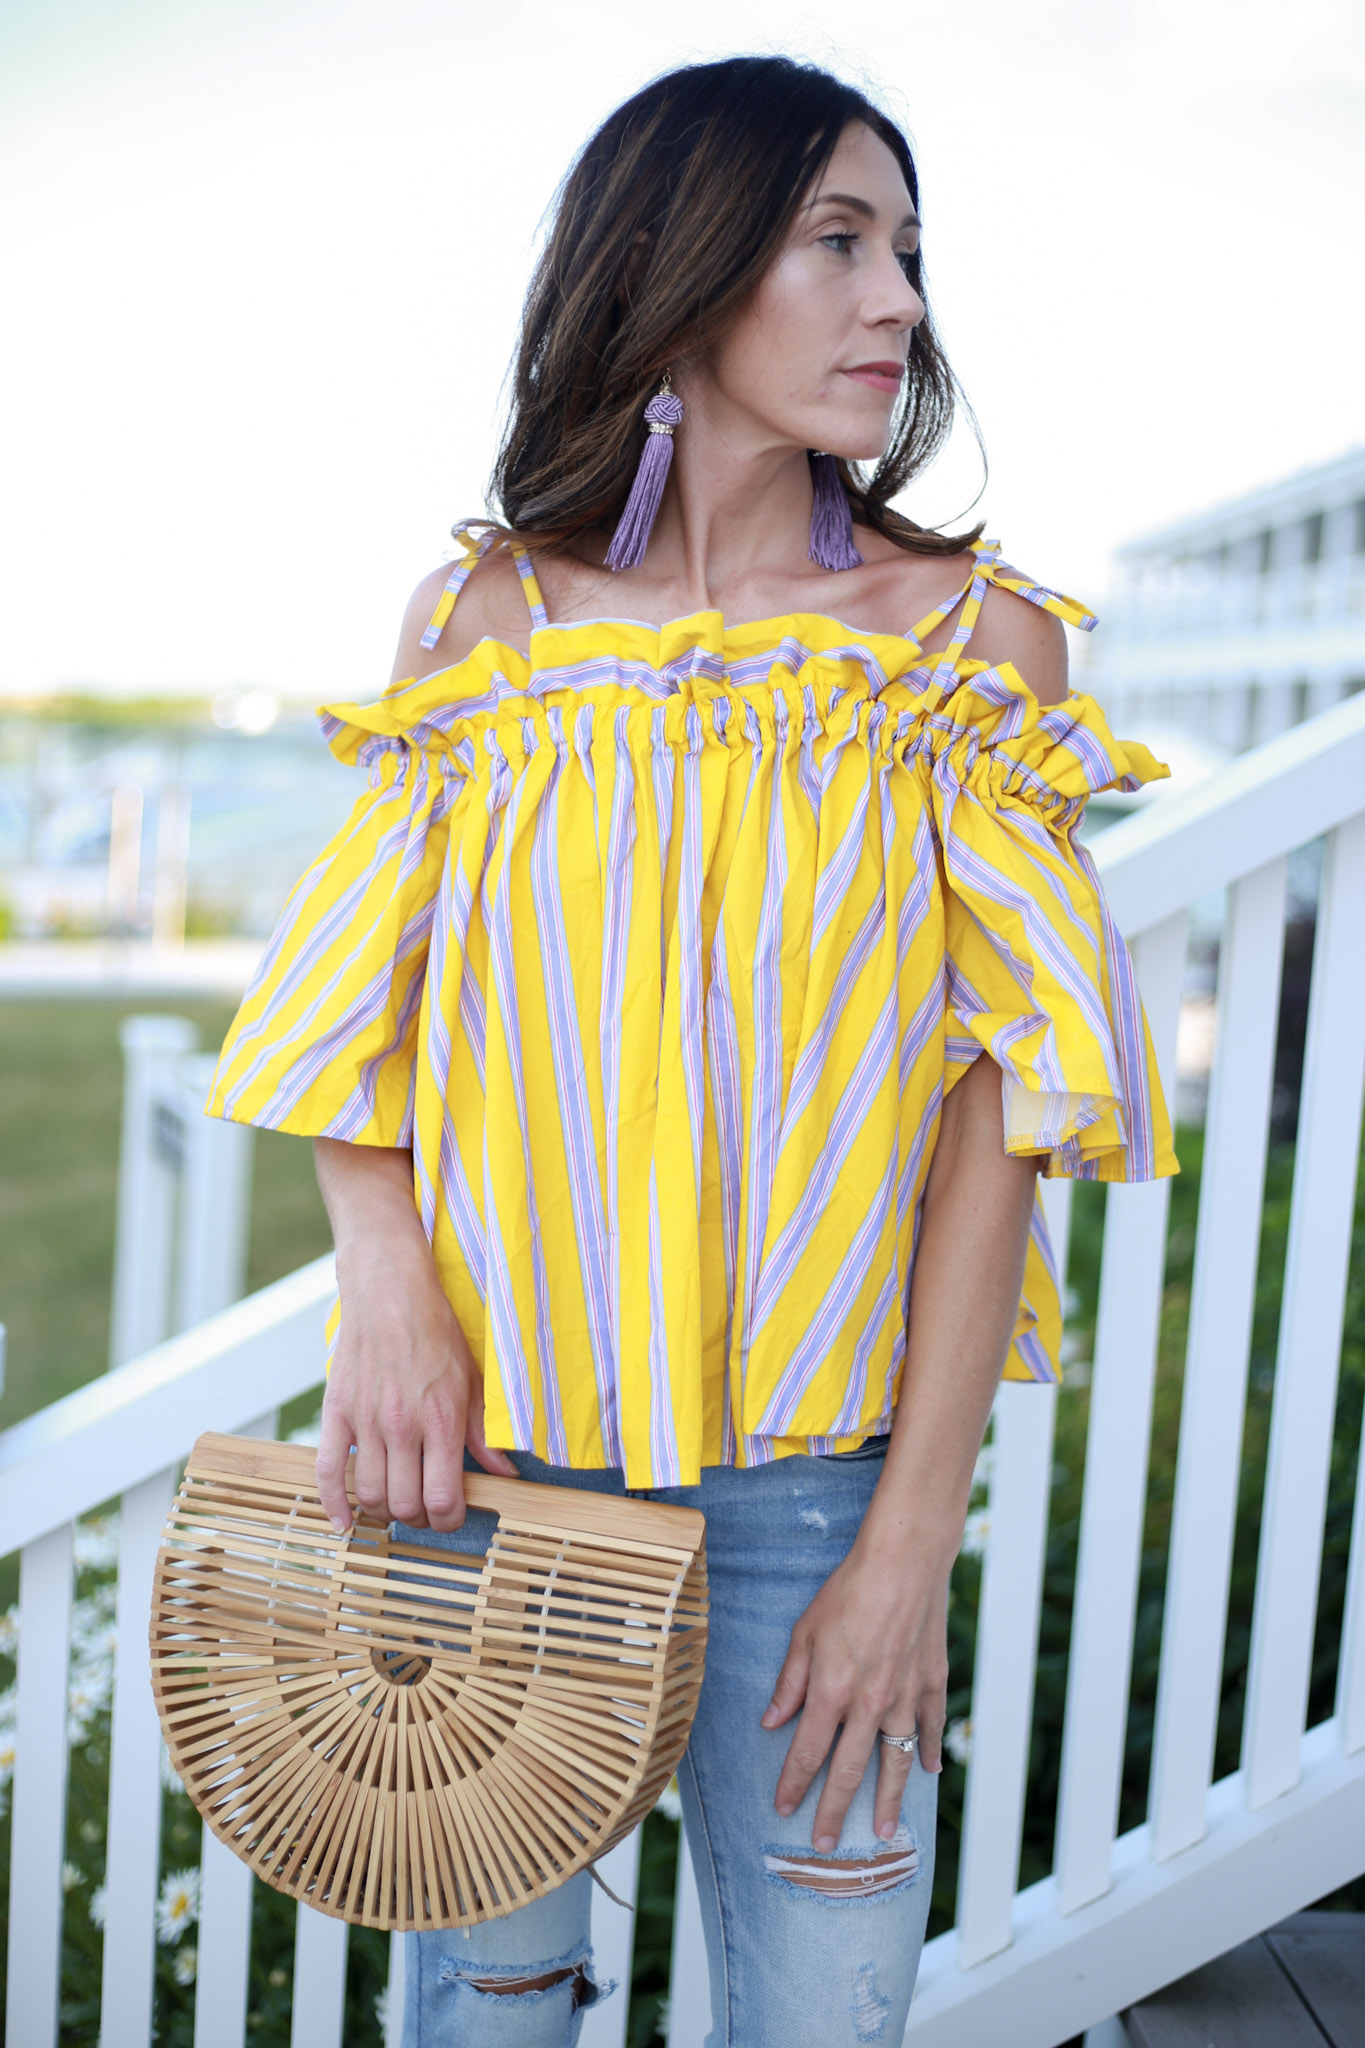 styling off the shoulder top, How To Use Liketoknow It by Boston fashion blogger Living Life Pretty